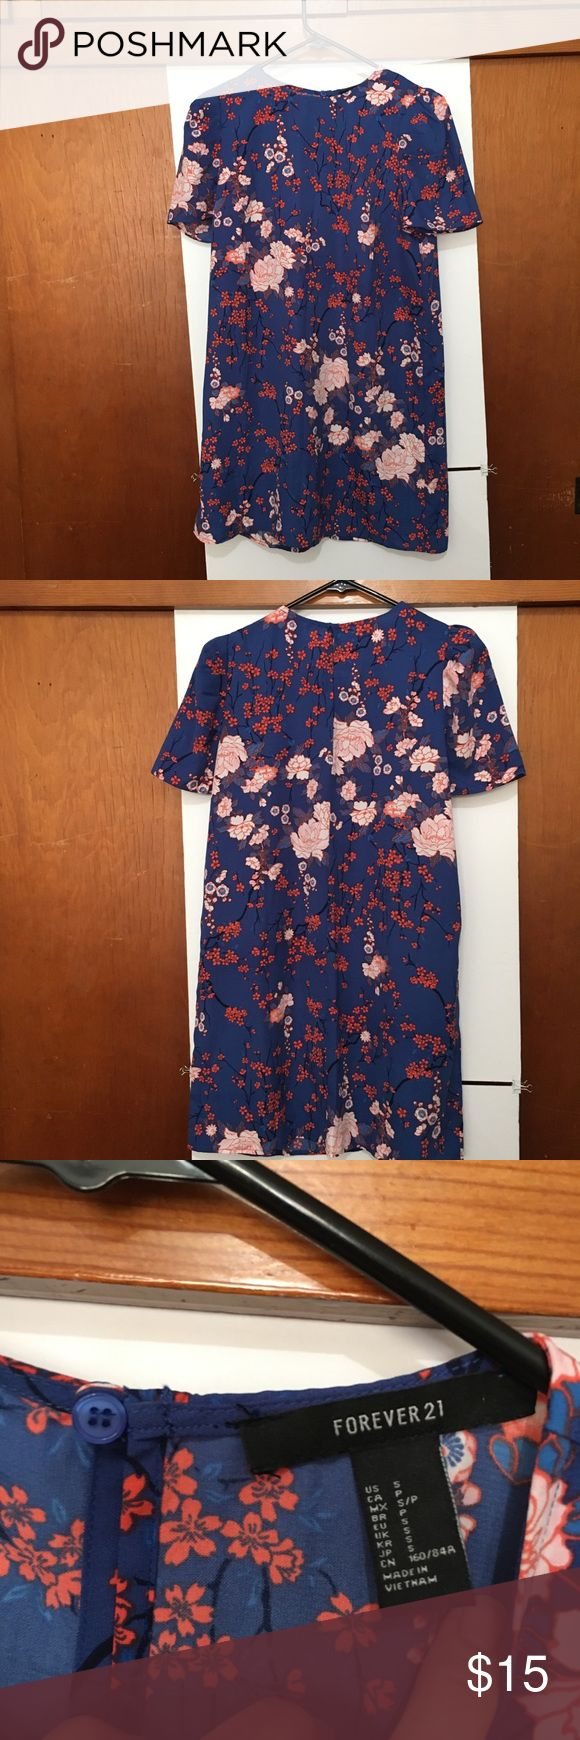 Summer dress sz S Blue Blue flowery dress! Super cute! Looks better with a belt! (Not included) from Forever 21, worn only once! Forever 21 Dresses Mini